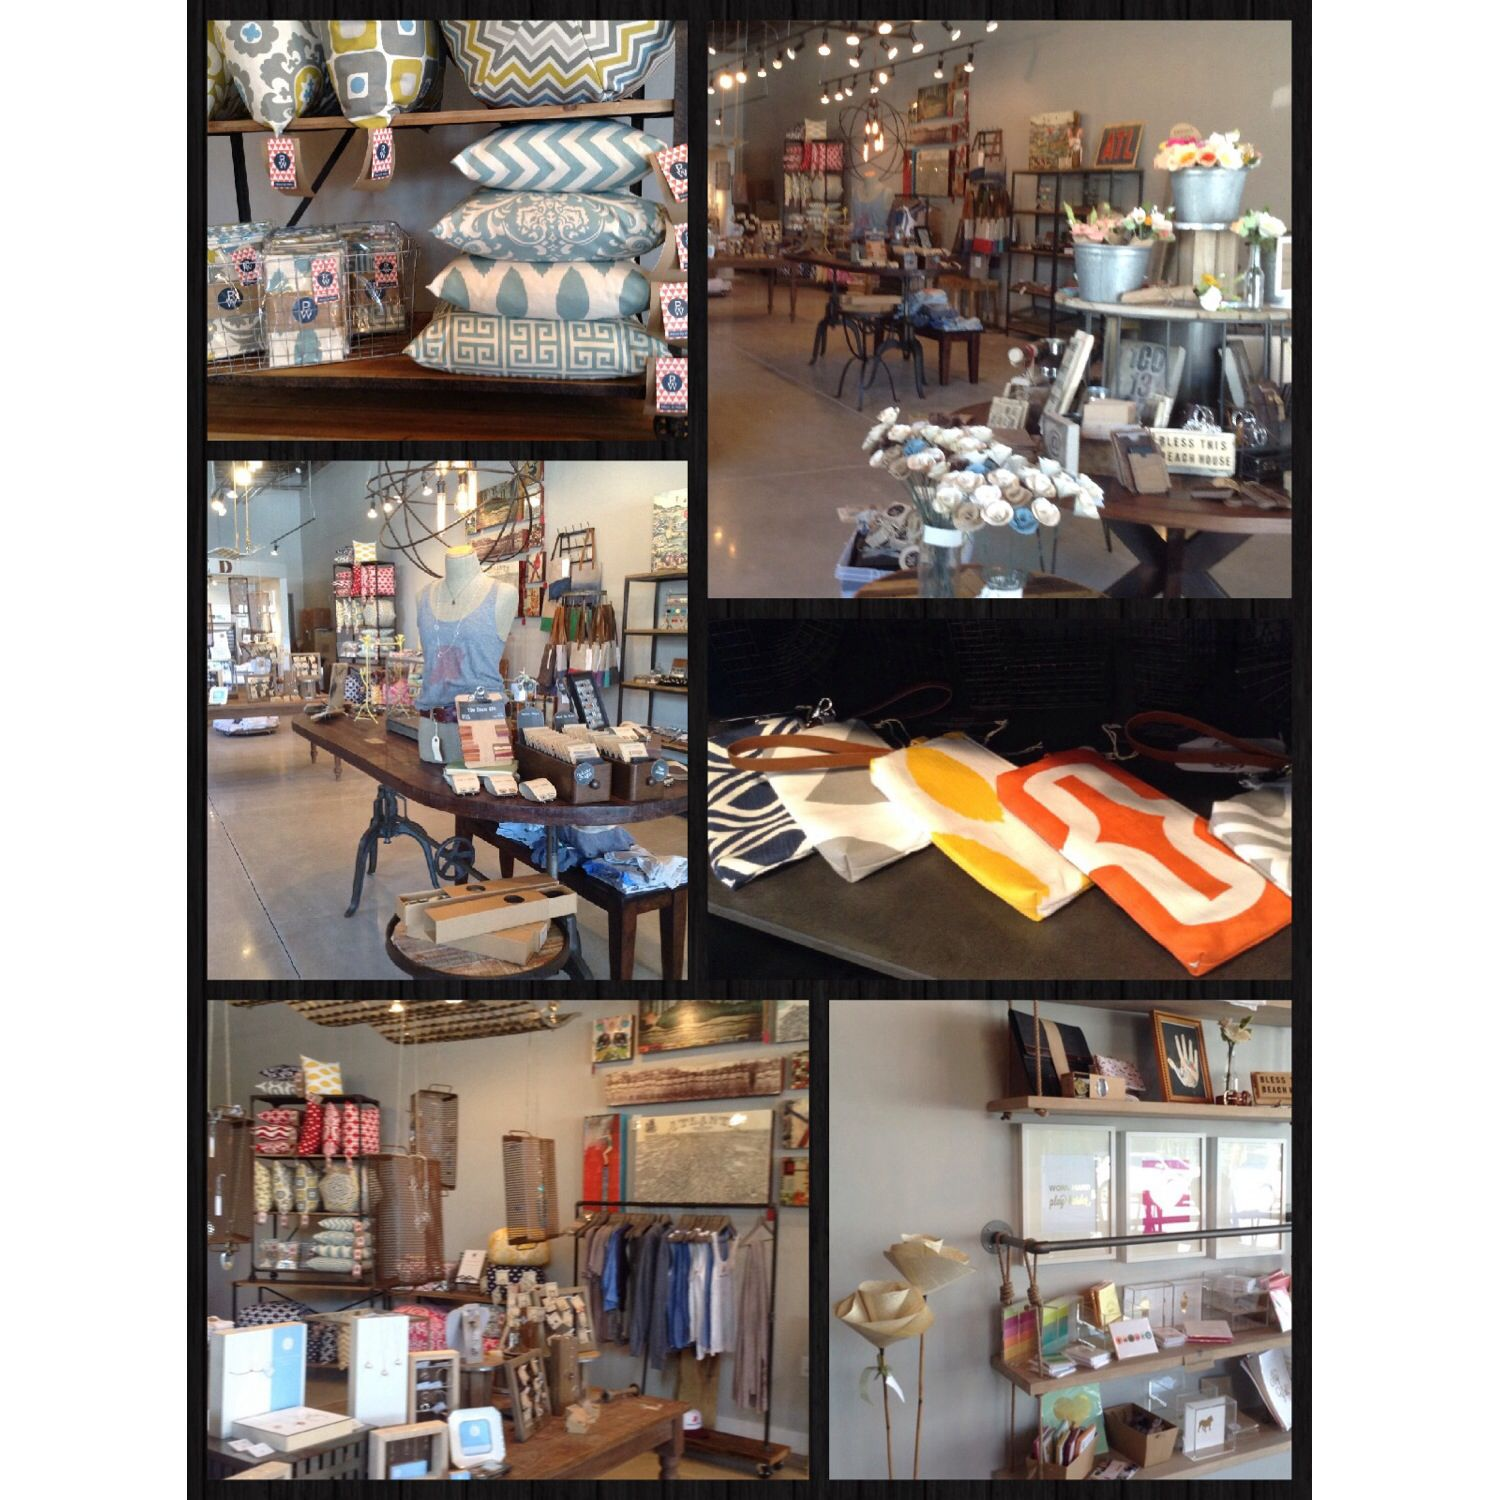 Home Decor Stores Atlanta: Crafted Westside Store In Midtown, Atlanta, Georgia Is Now